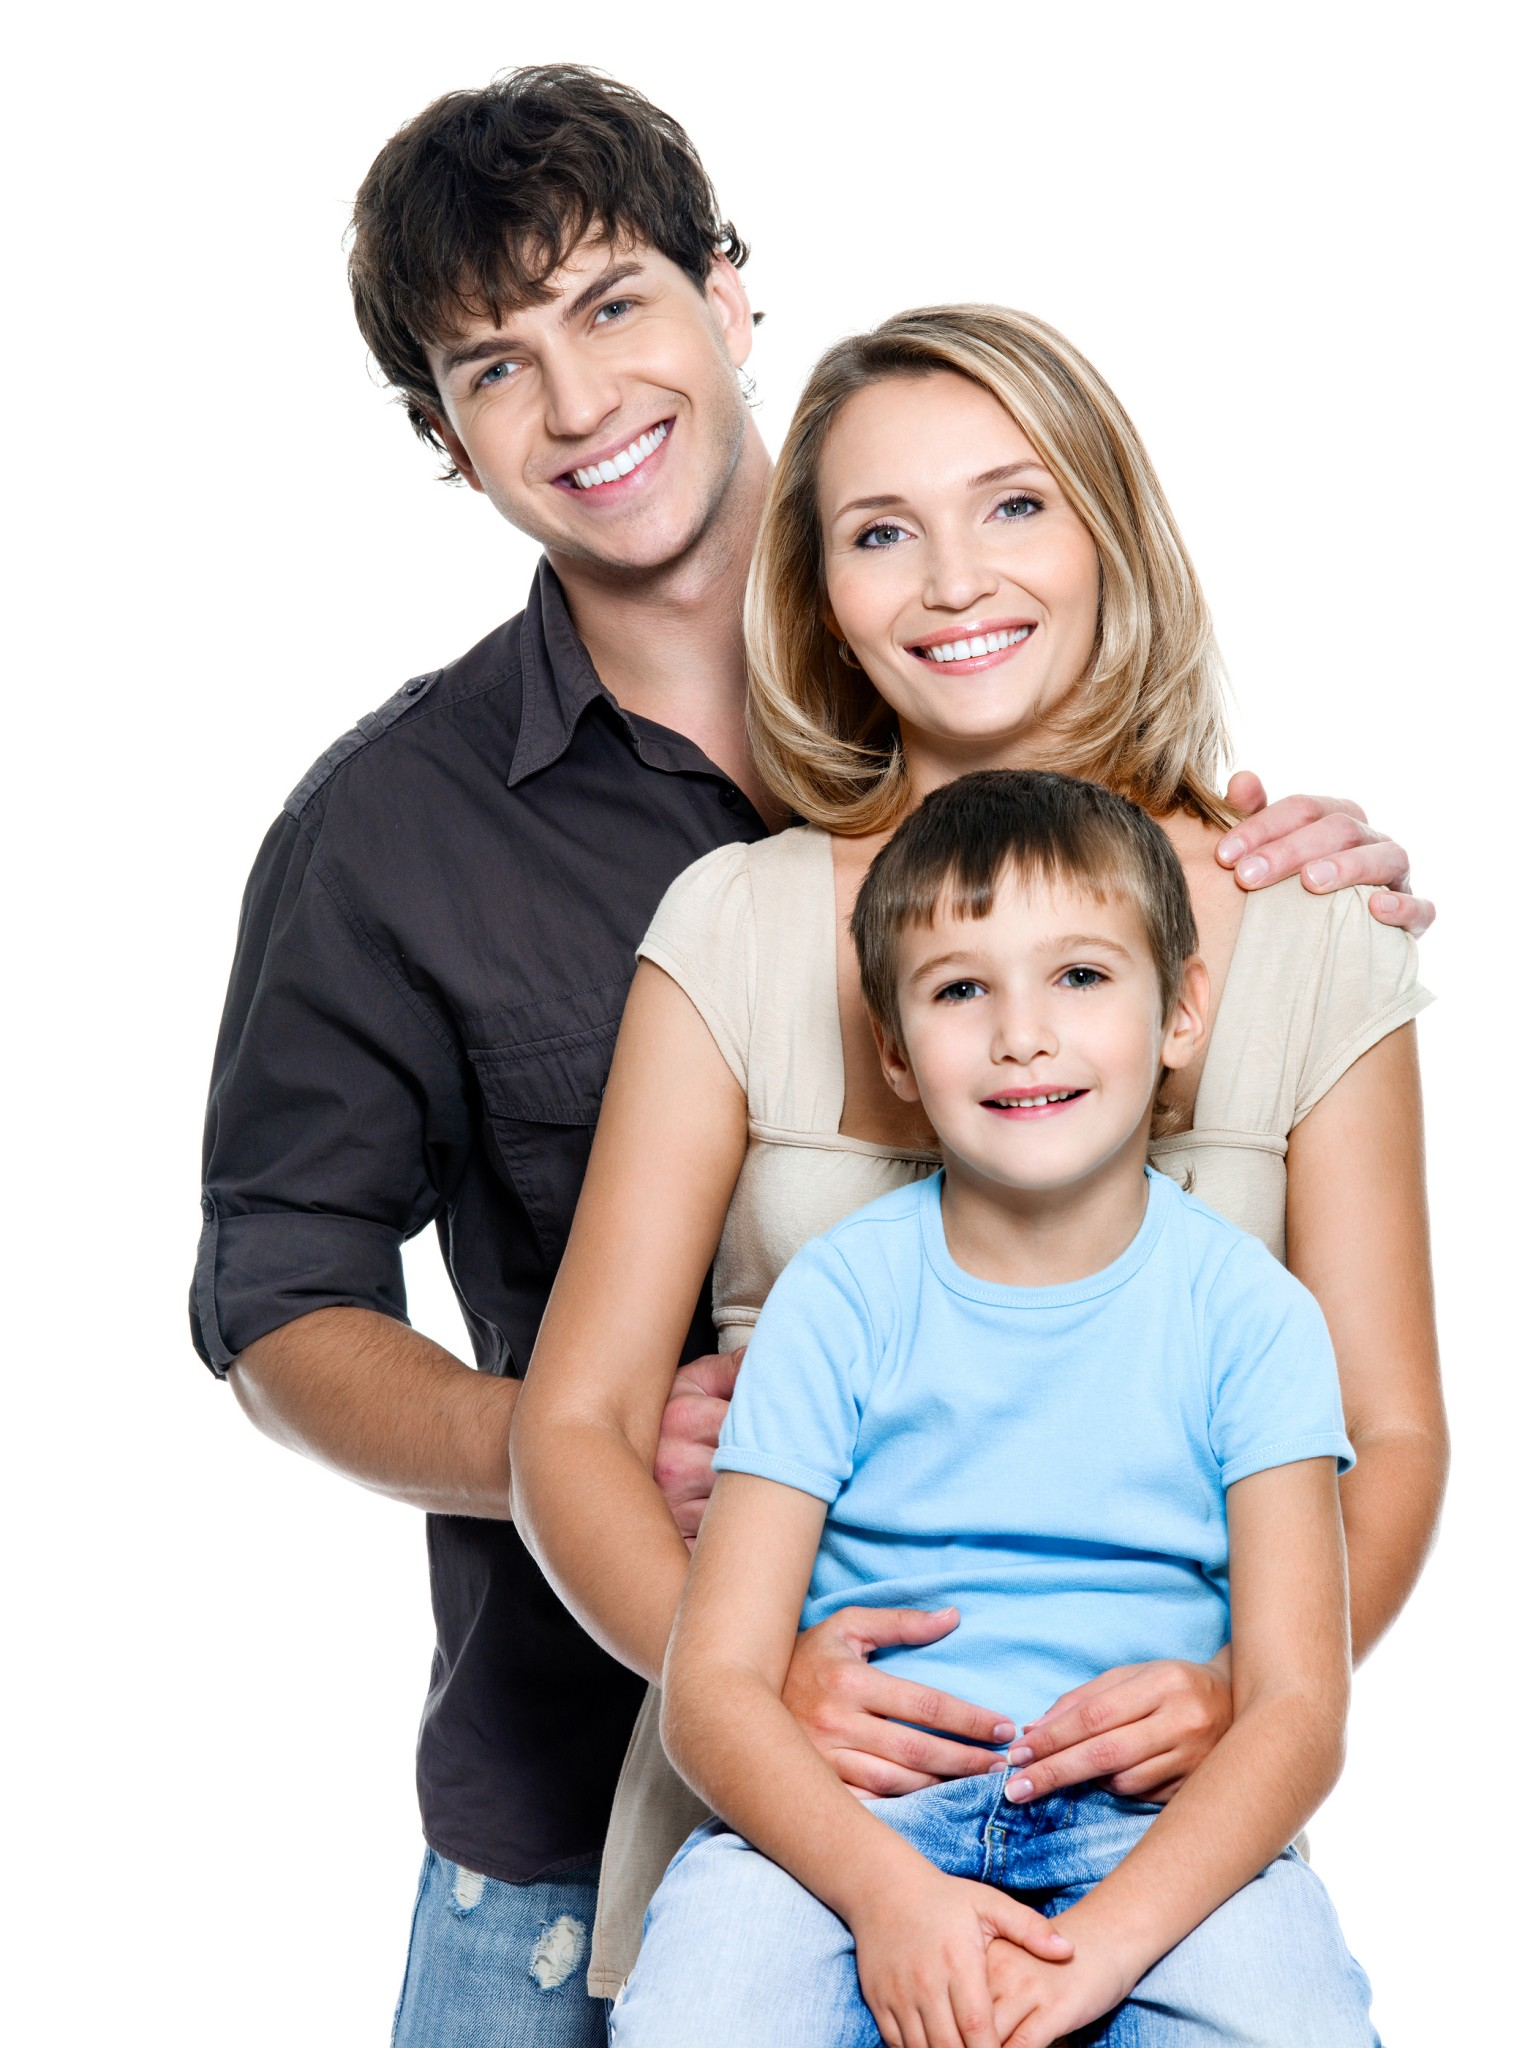 bigstock-Happy-young-family-with-pretty-61650650